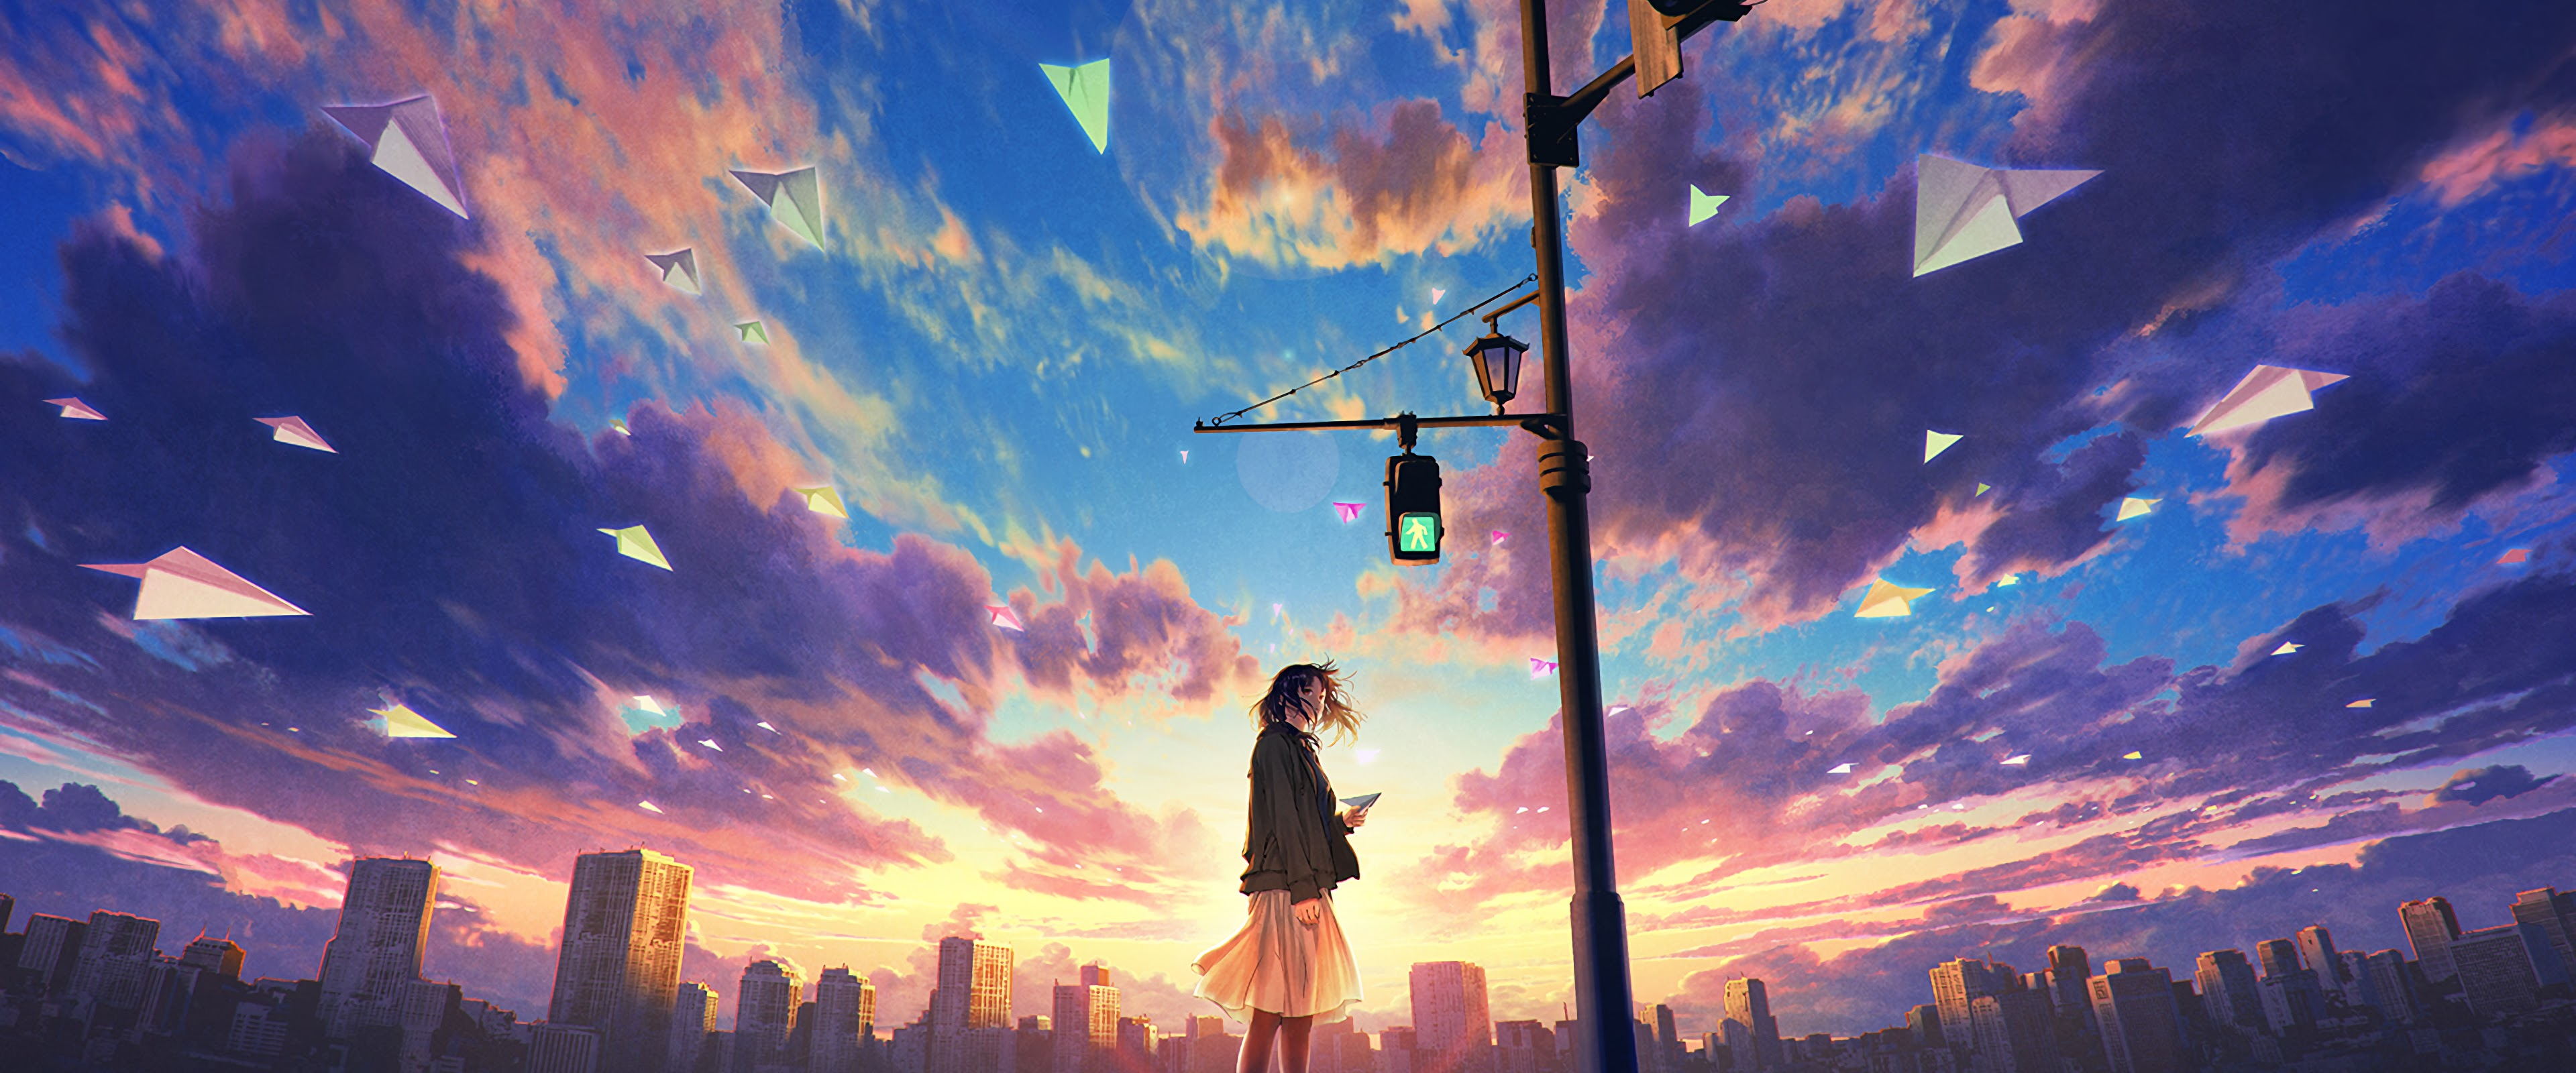 Anime Girl Sky Clouds Sunrise Scenery 4k Wallpaper 67